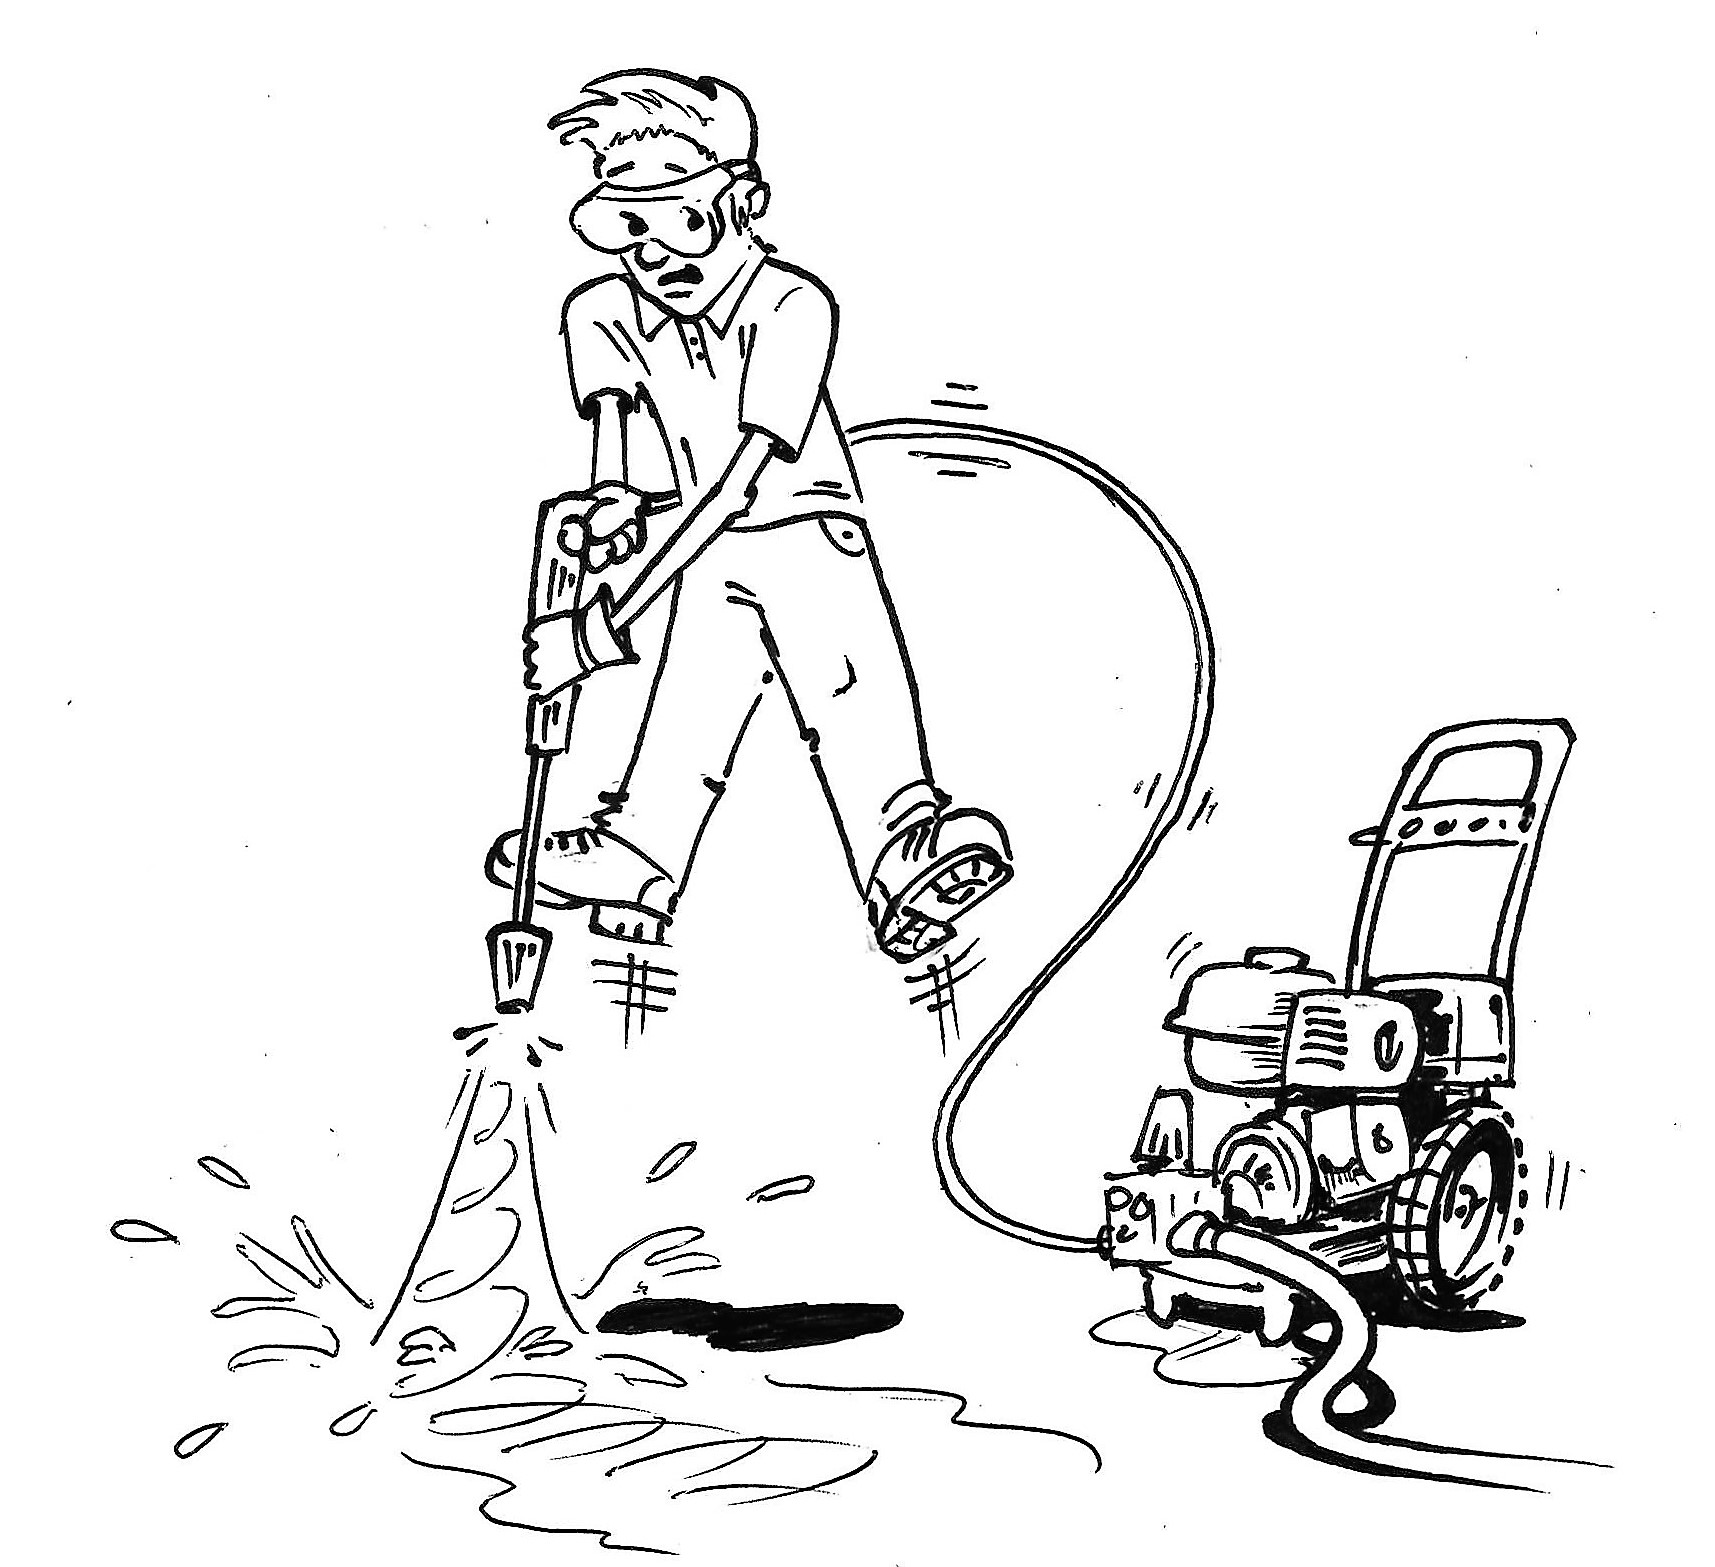 how to get nozzle off pressure washer